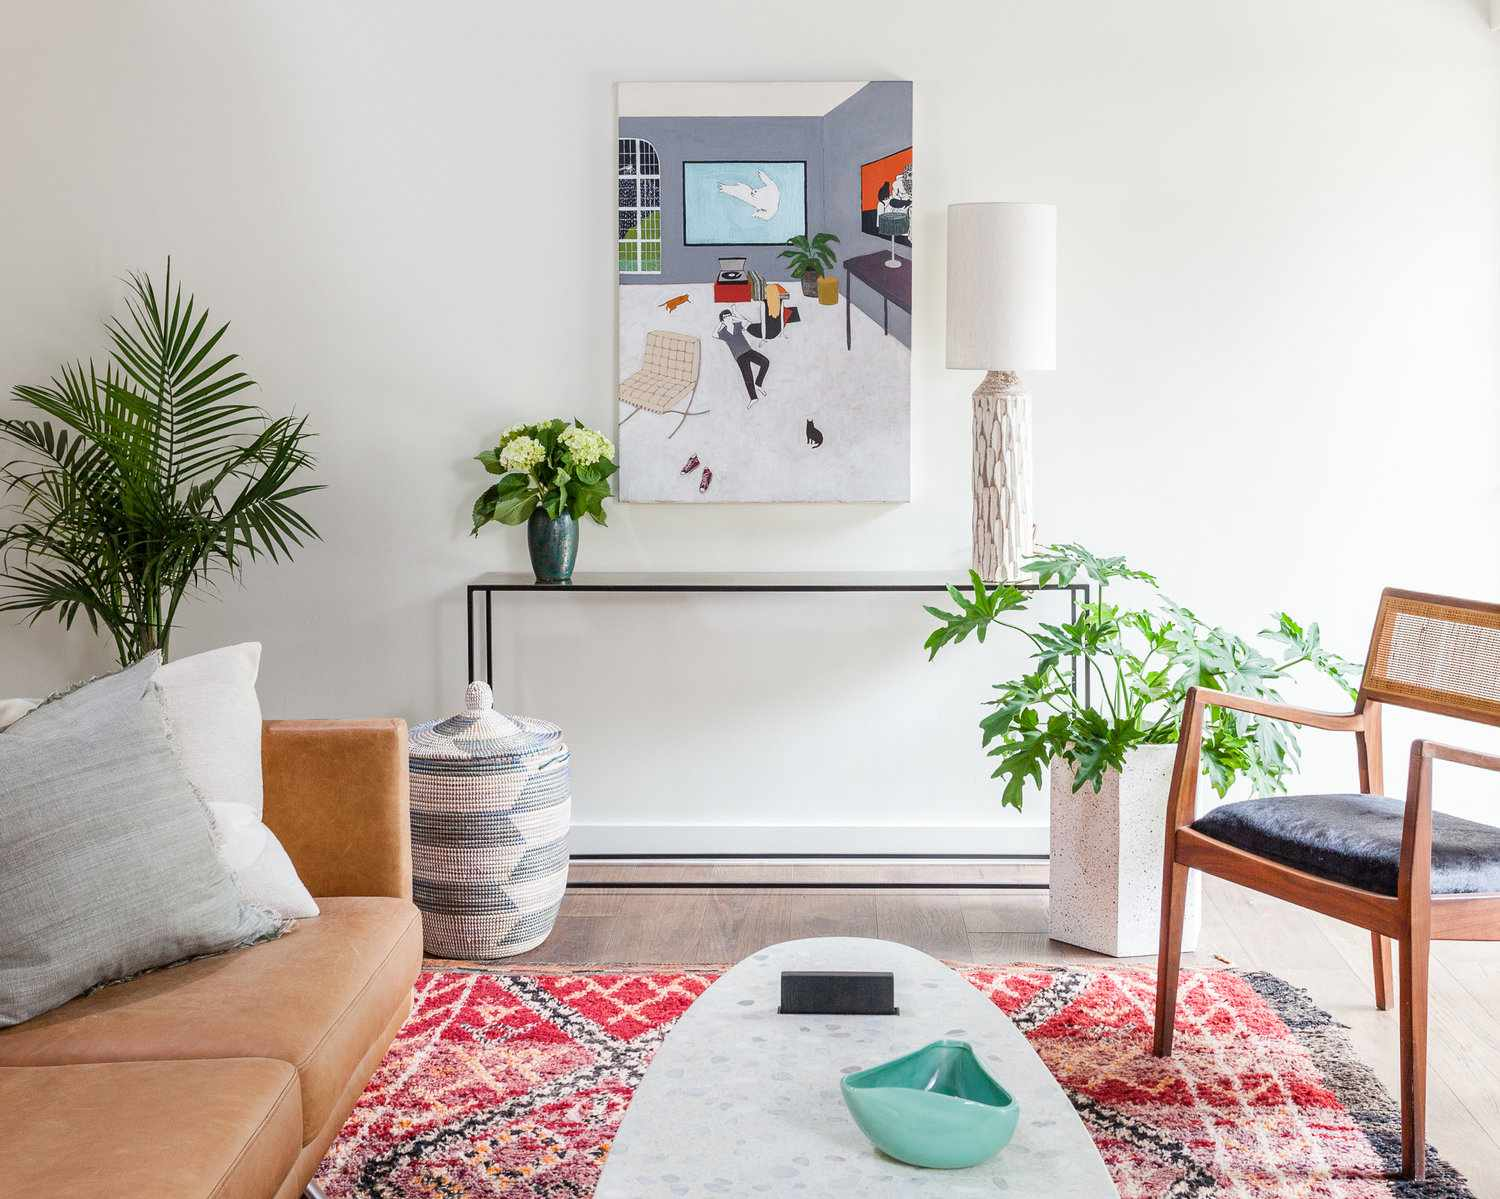 Fun console table with artwork and plants.